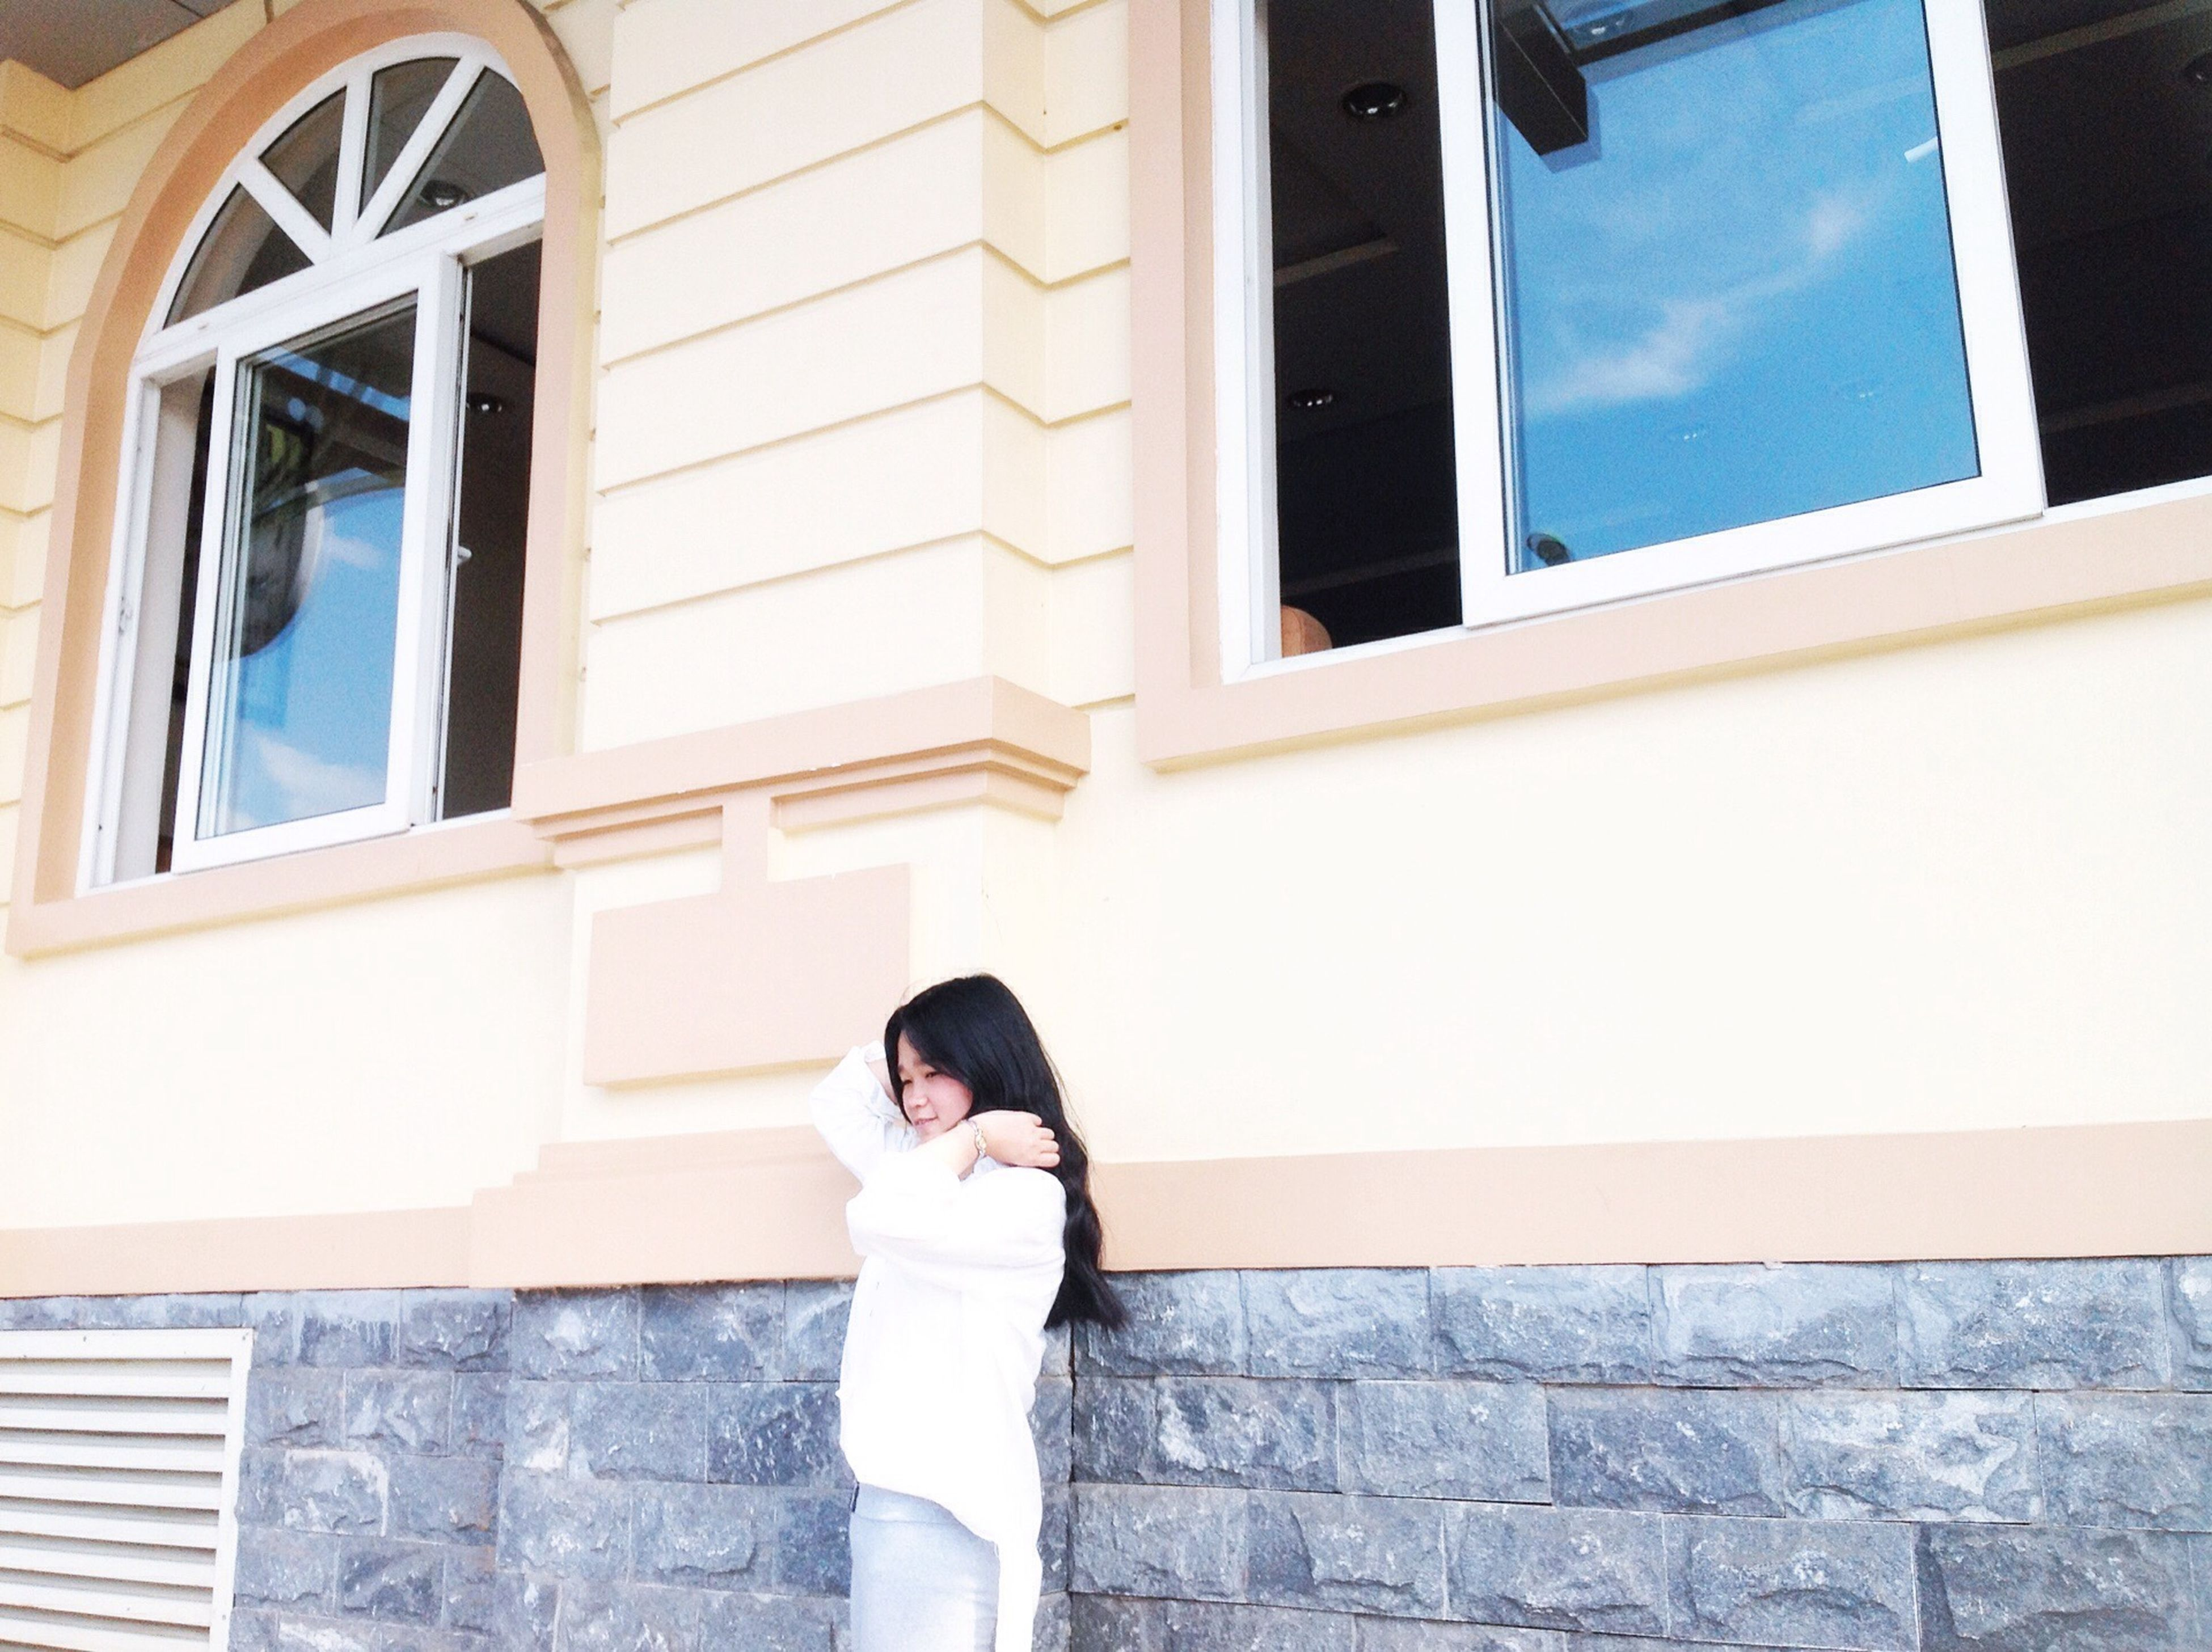 architecture, building exterior, built structure, lifestyles, standing, window, young adult, casual clothing, young women, leisure activity, building, wall - building feature, day, three quarter length, person, waist up, front view, side view